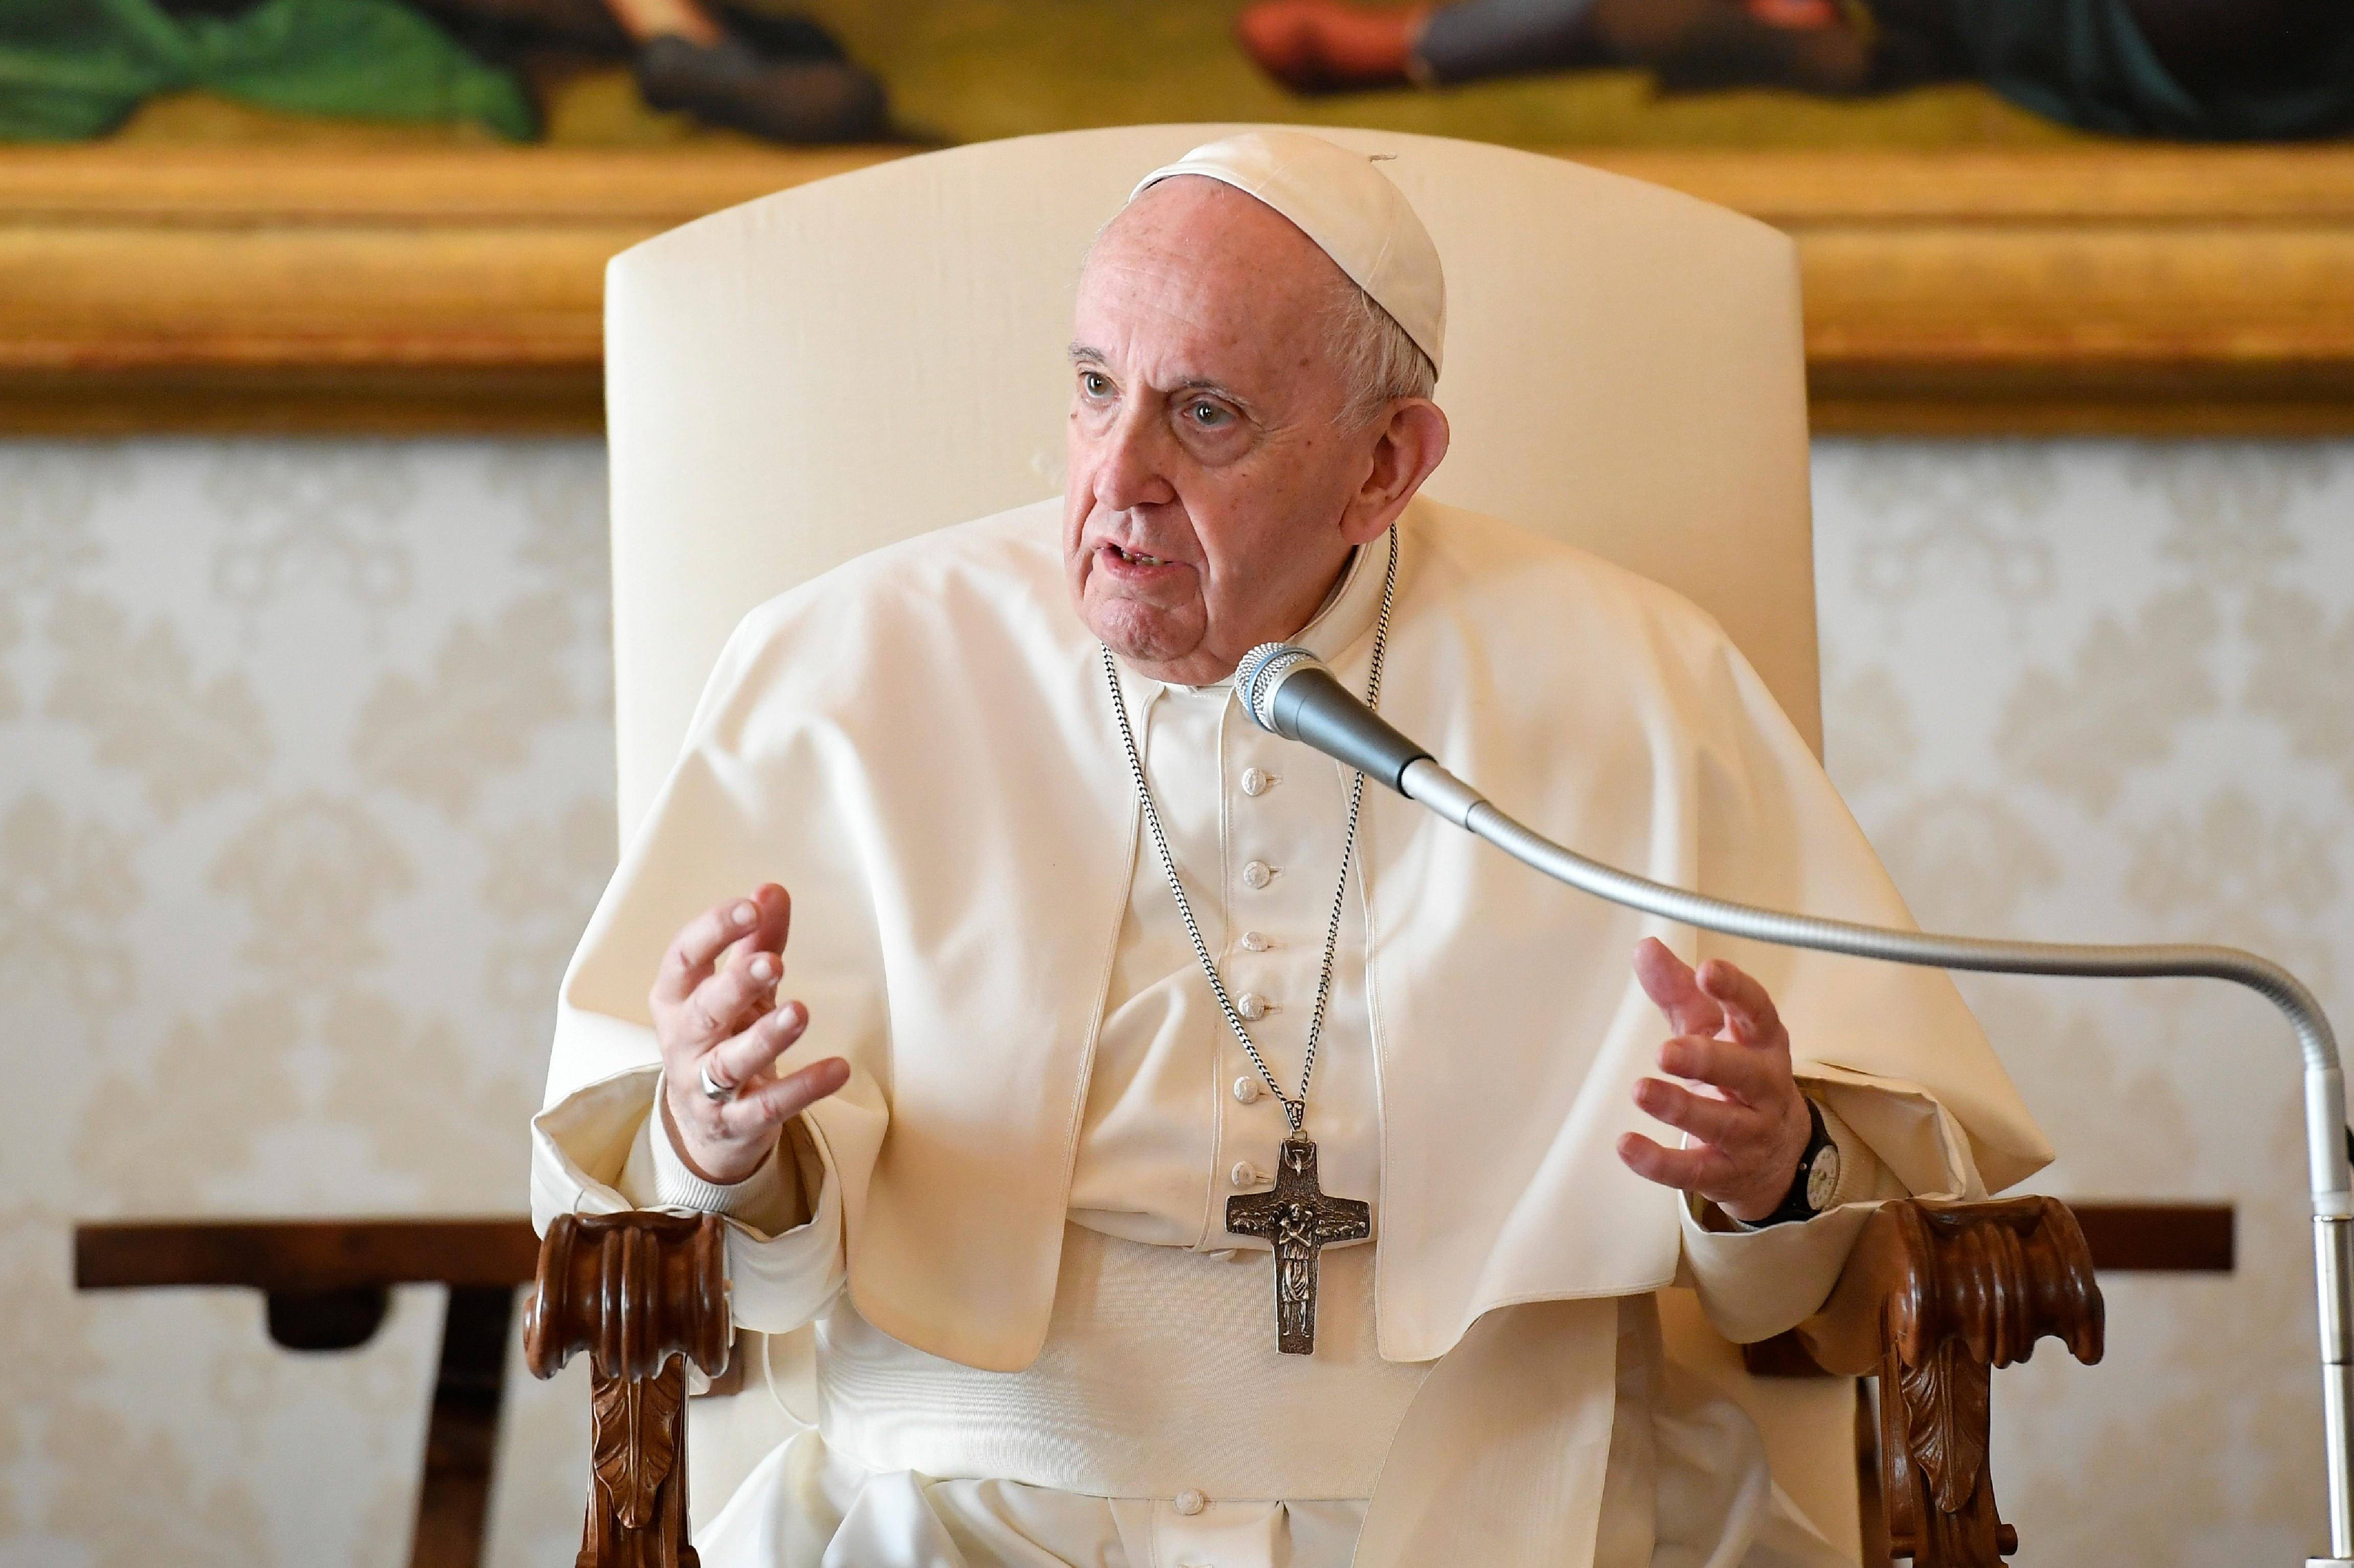 Pope Christmas Mass 2021 Vatican Sources Suspect Pope Francis Was Distancing Himself From Cdf Statement On Same Sex Unions In Address America Magazine